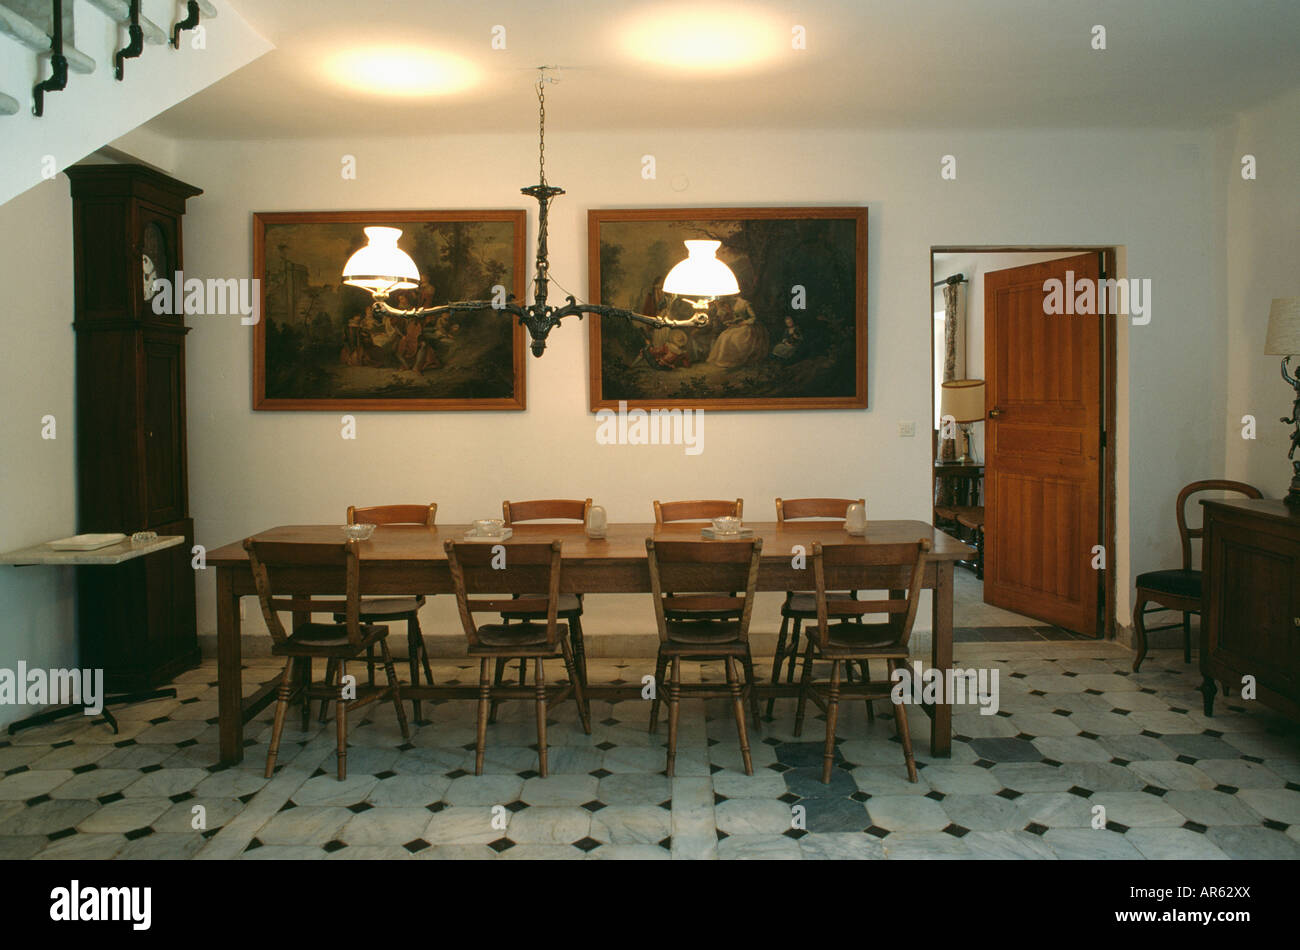 Victorian Style Lighting Above Rectangular Wooden Table And Chairs